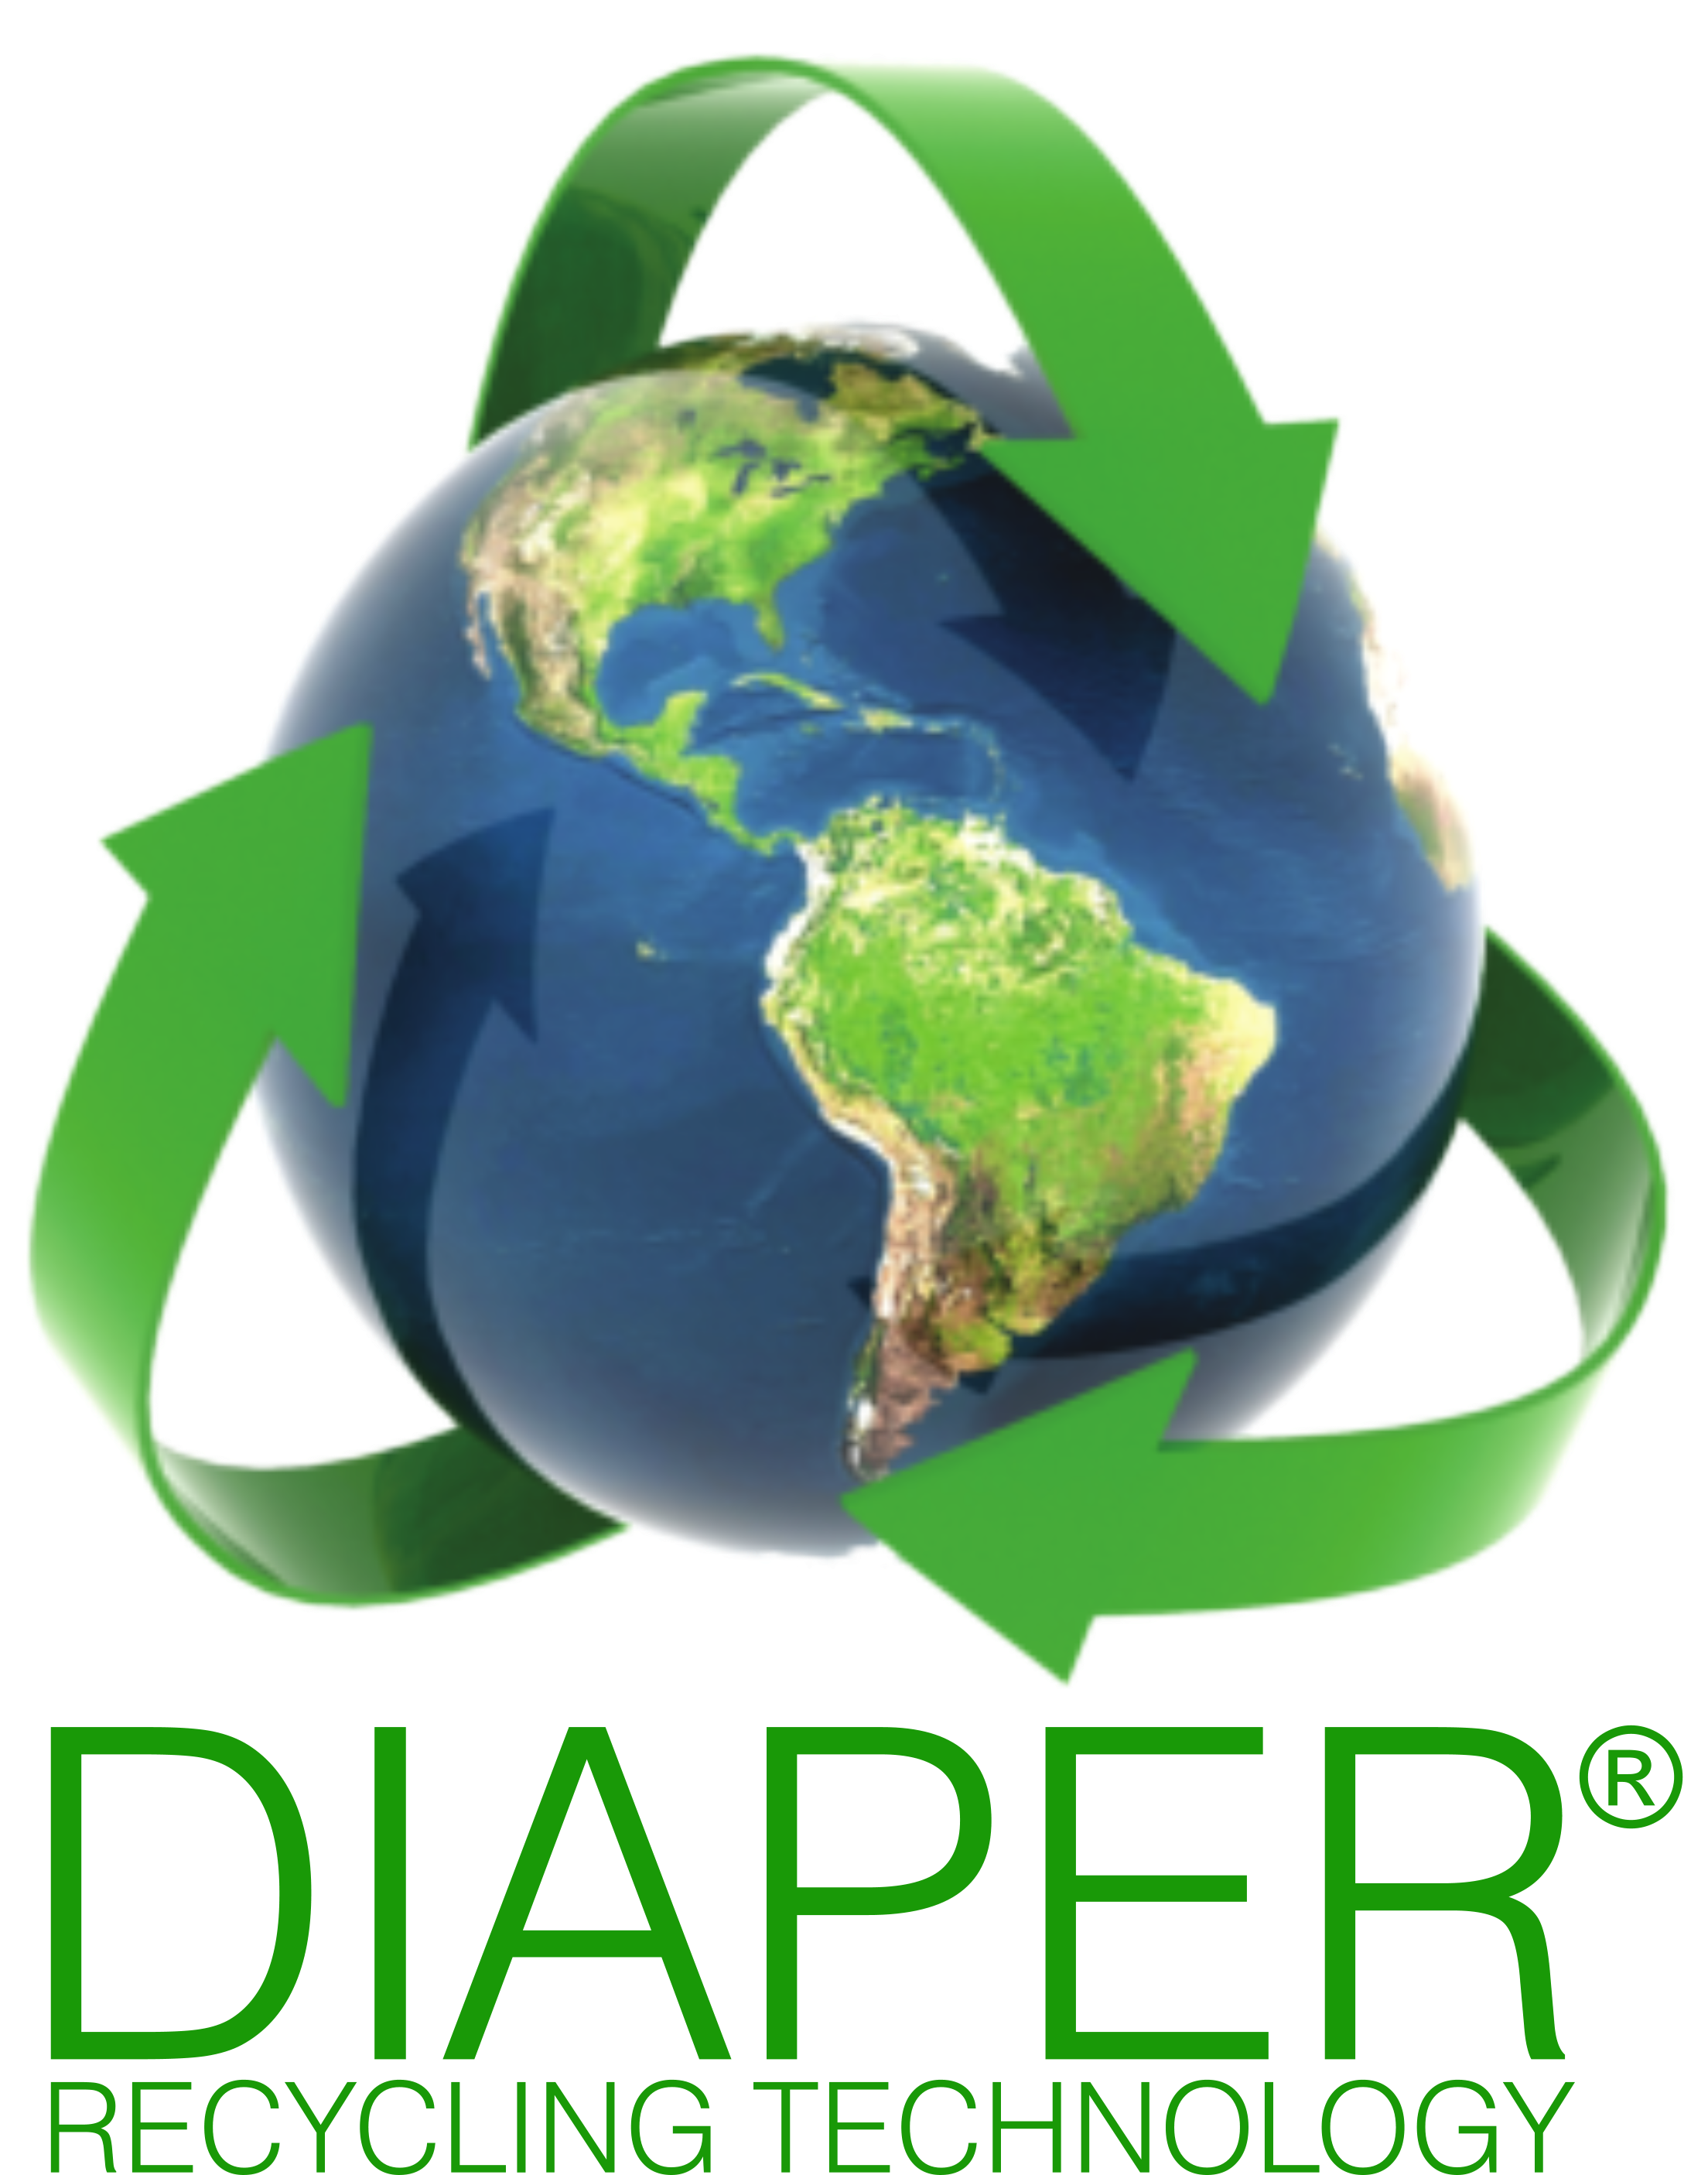 Coterie diaper recycling parter Diaper Recycling Technology (DRT)